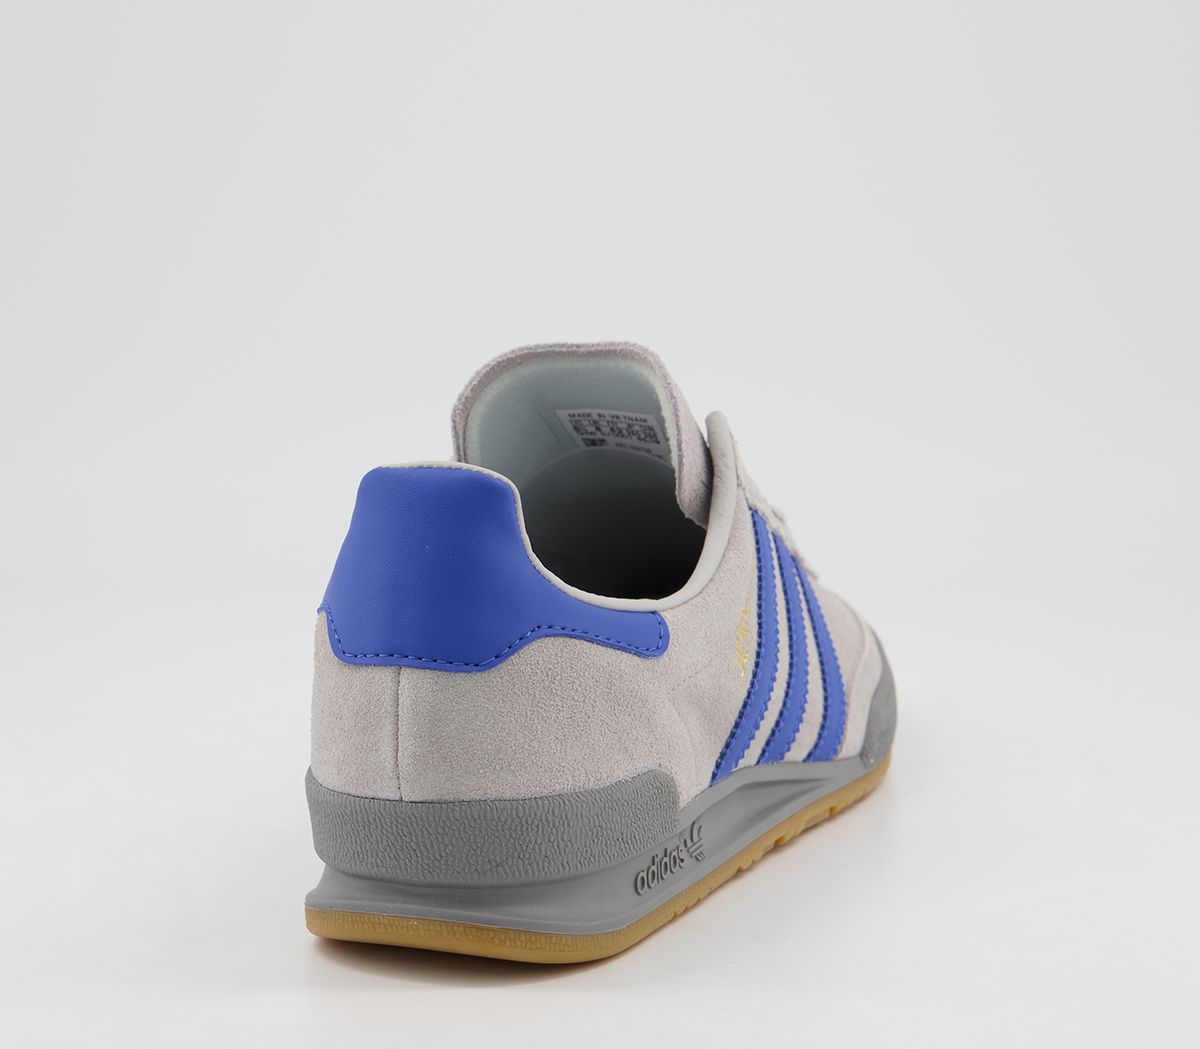 Details zu Adidas Jeans Trainers Grey Blue Trainers Shoes